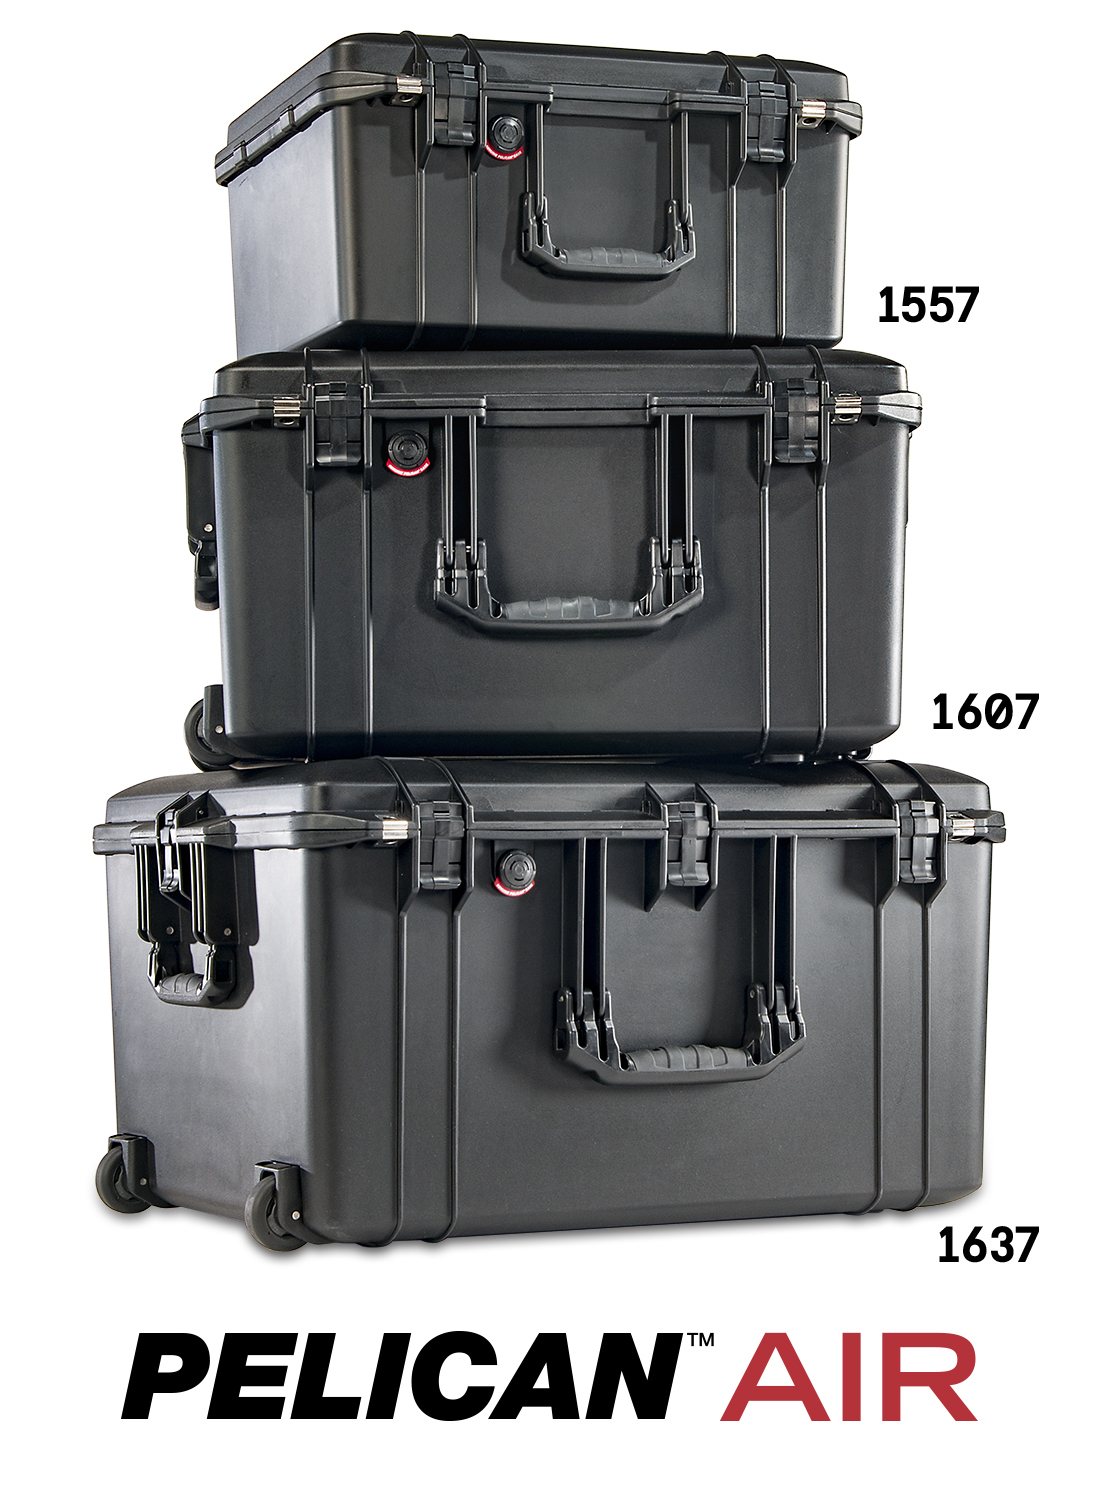 Pelican products unveils 3 new sizes of lightweight pelican air for pelican products inc leigh dow 480 522 5925 leigh48westagency publicscrutiny Choice Image